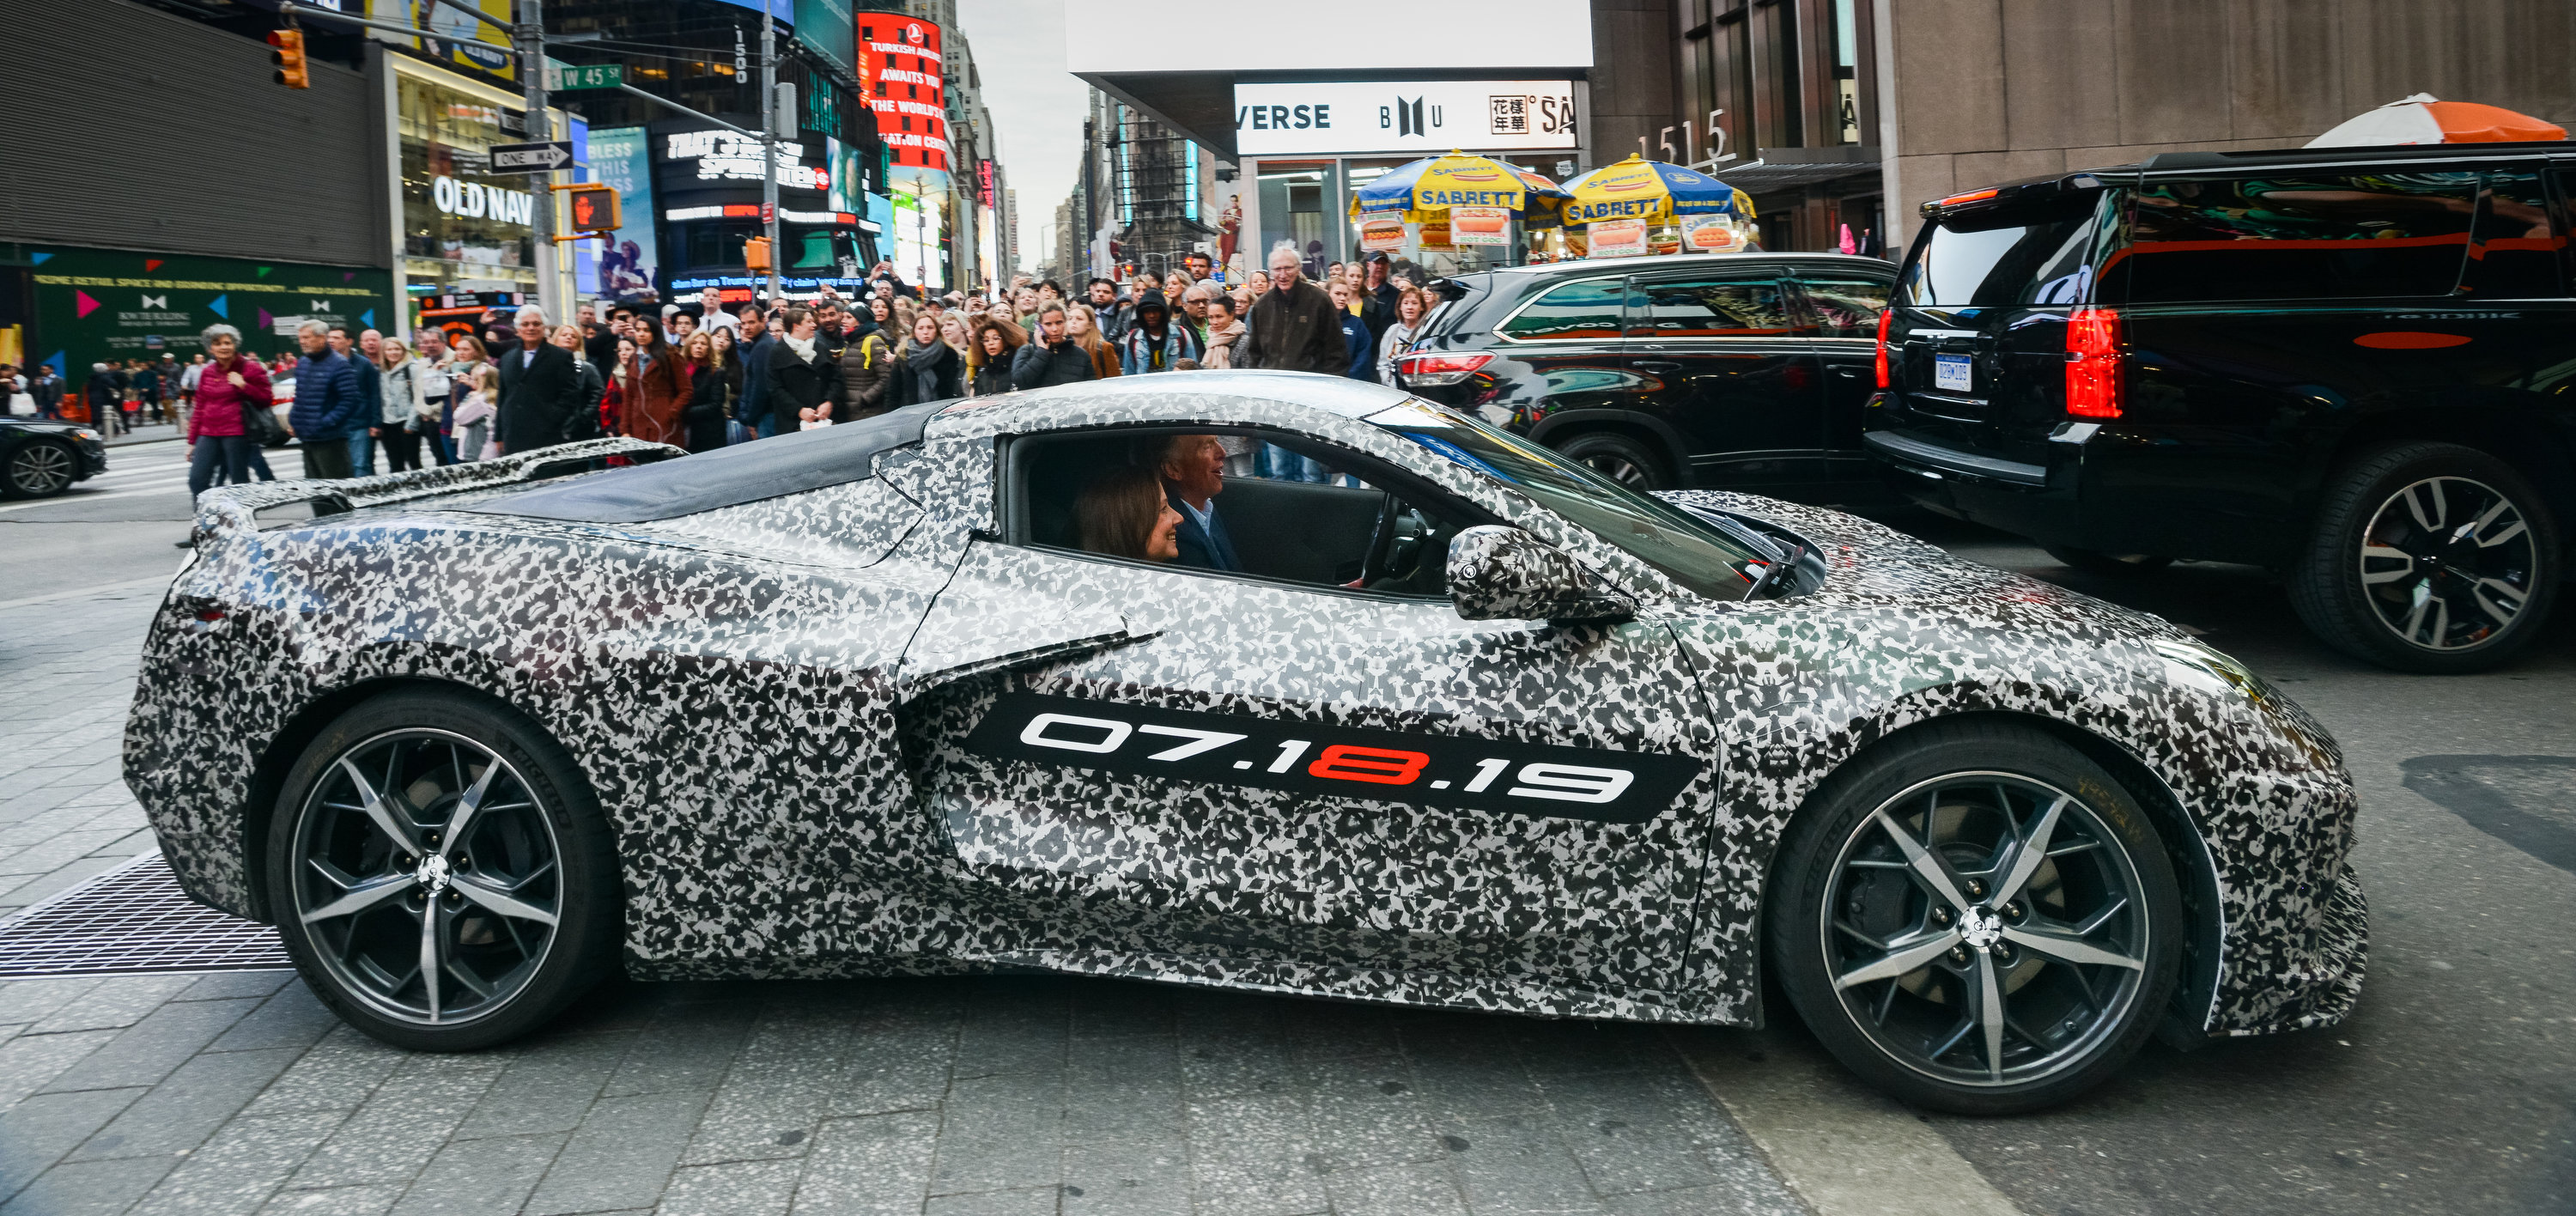 The next generation Corvette will be revealed on July 18th, 2019. Marry Barra, General Motors Chairman and CEO arrived in a camouflaged Corvette at a Stephen Siller Tunnel to Towers Foundation charity event in New York.